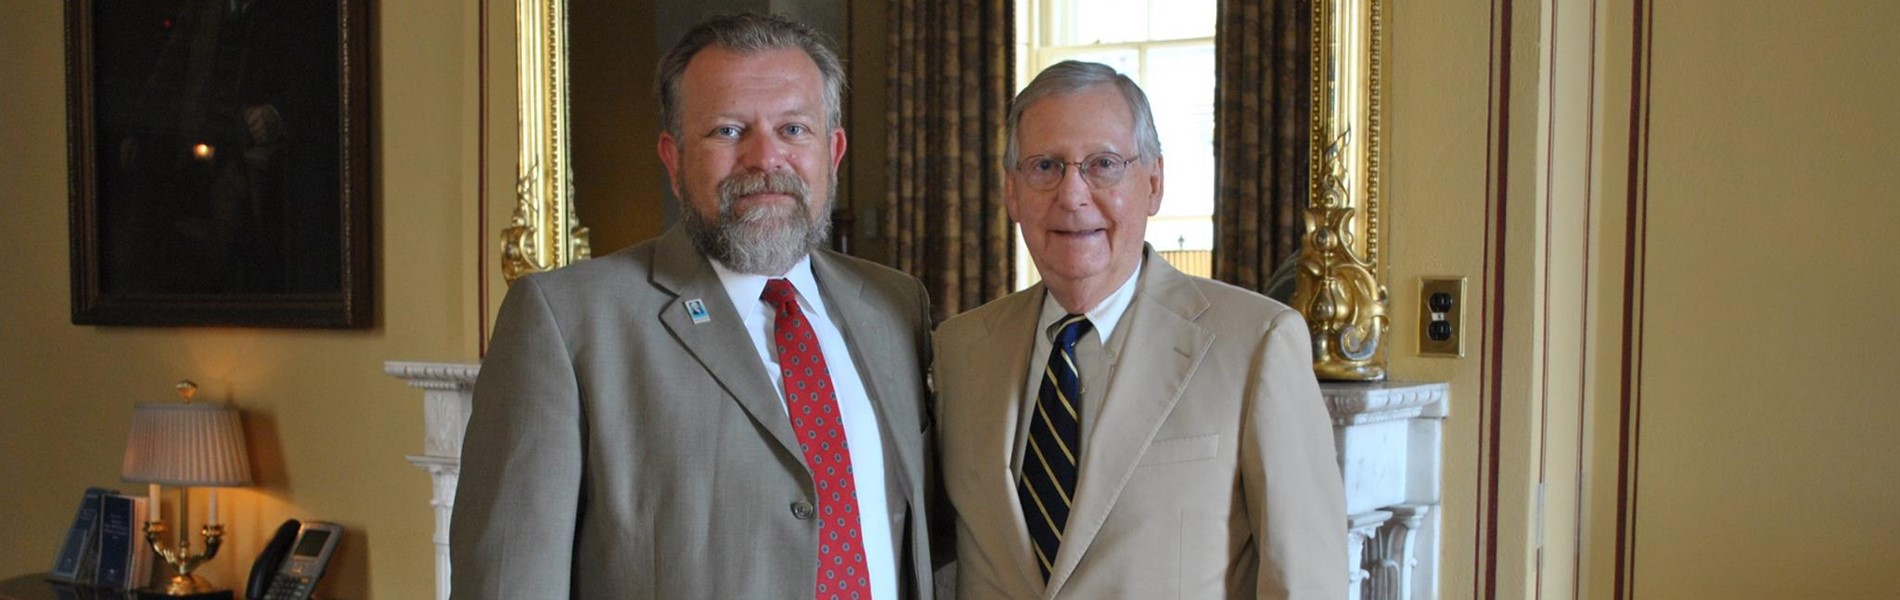 Mr. Howard Muncy with Senator Mitch McConnell